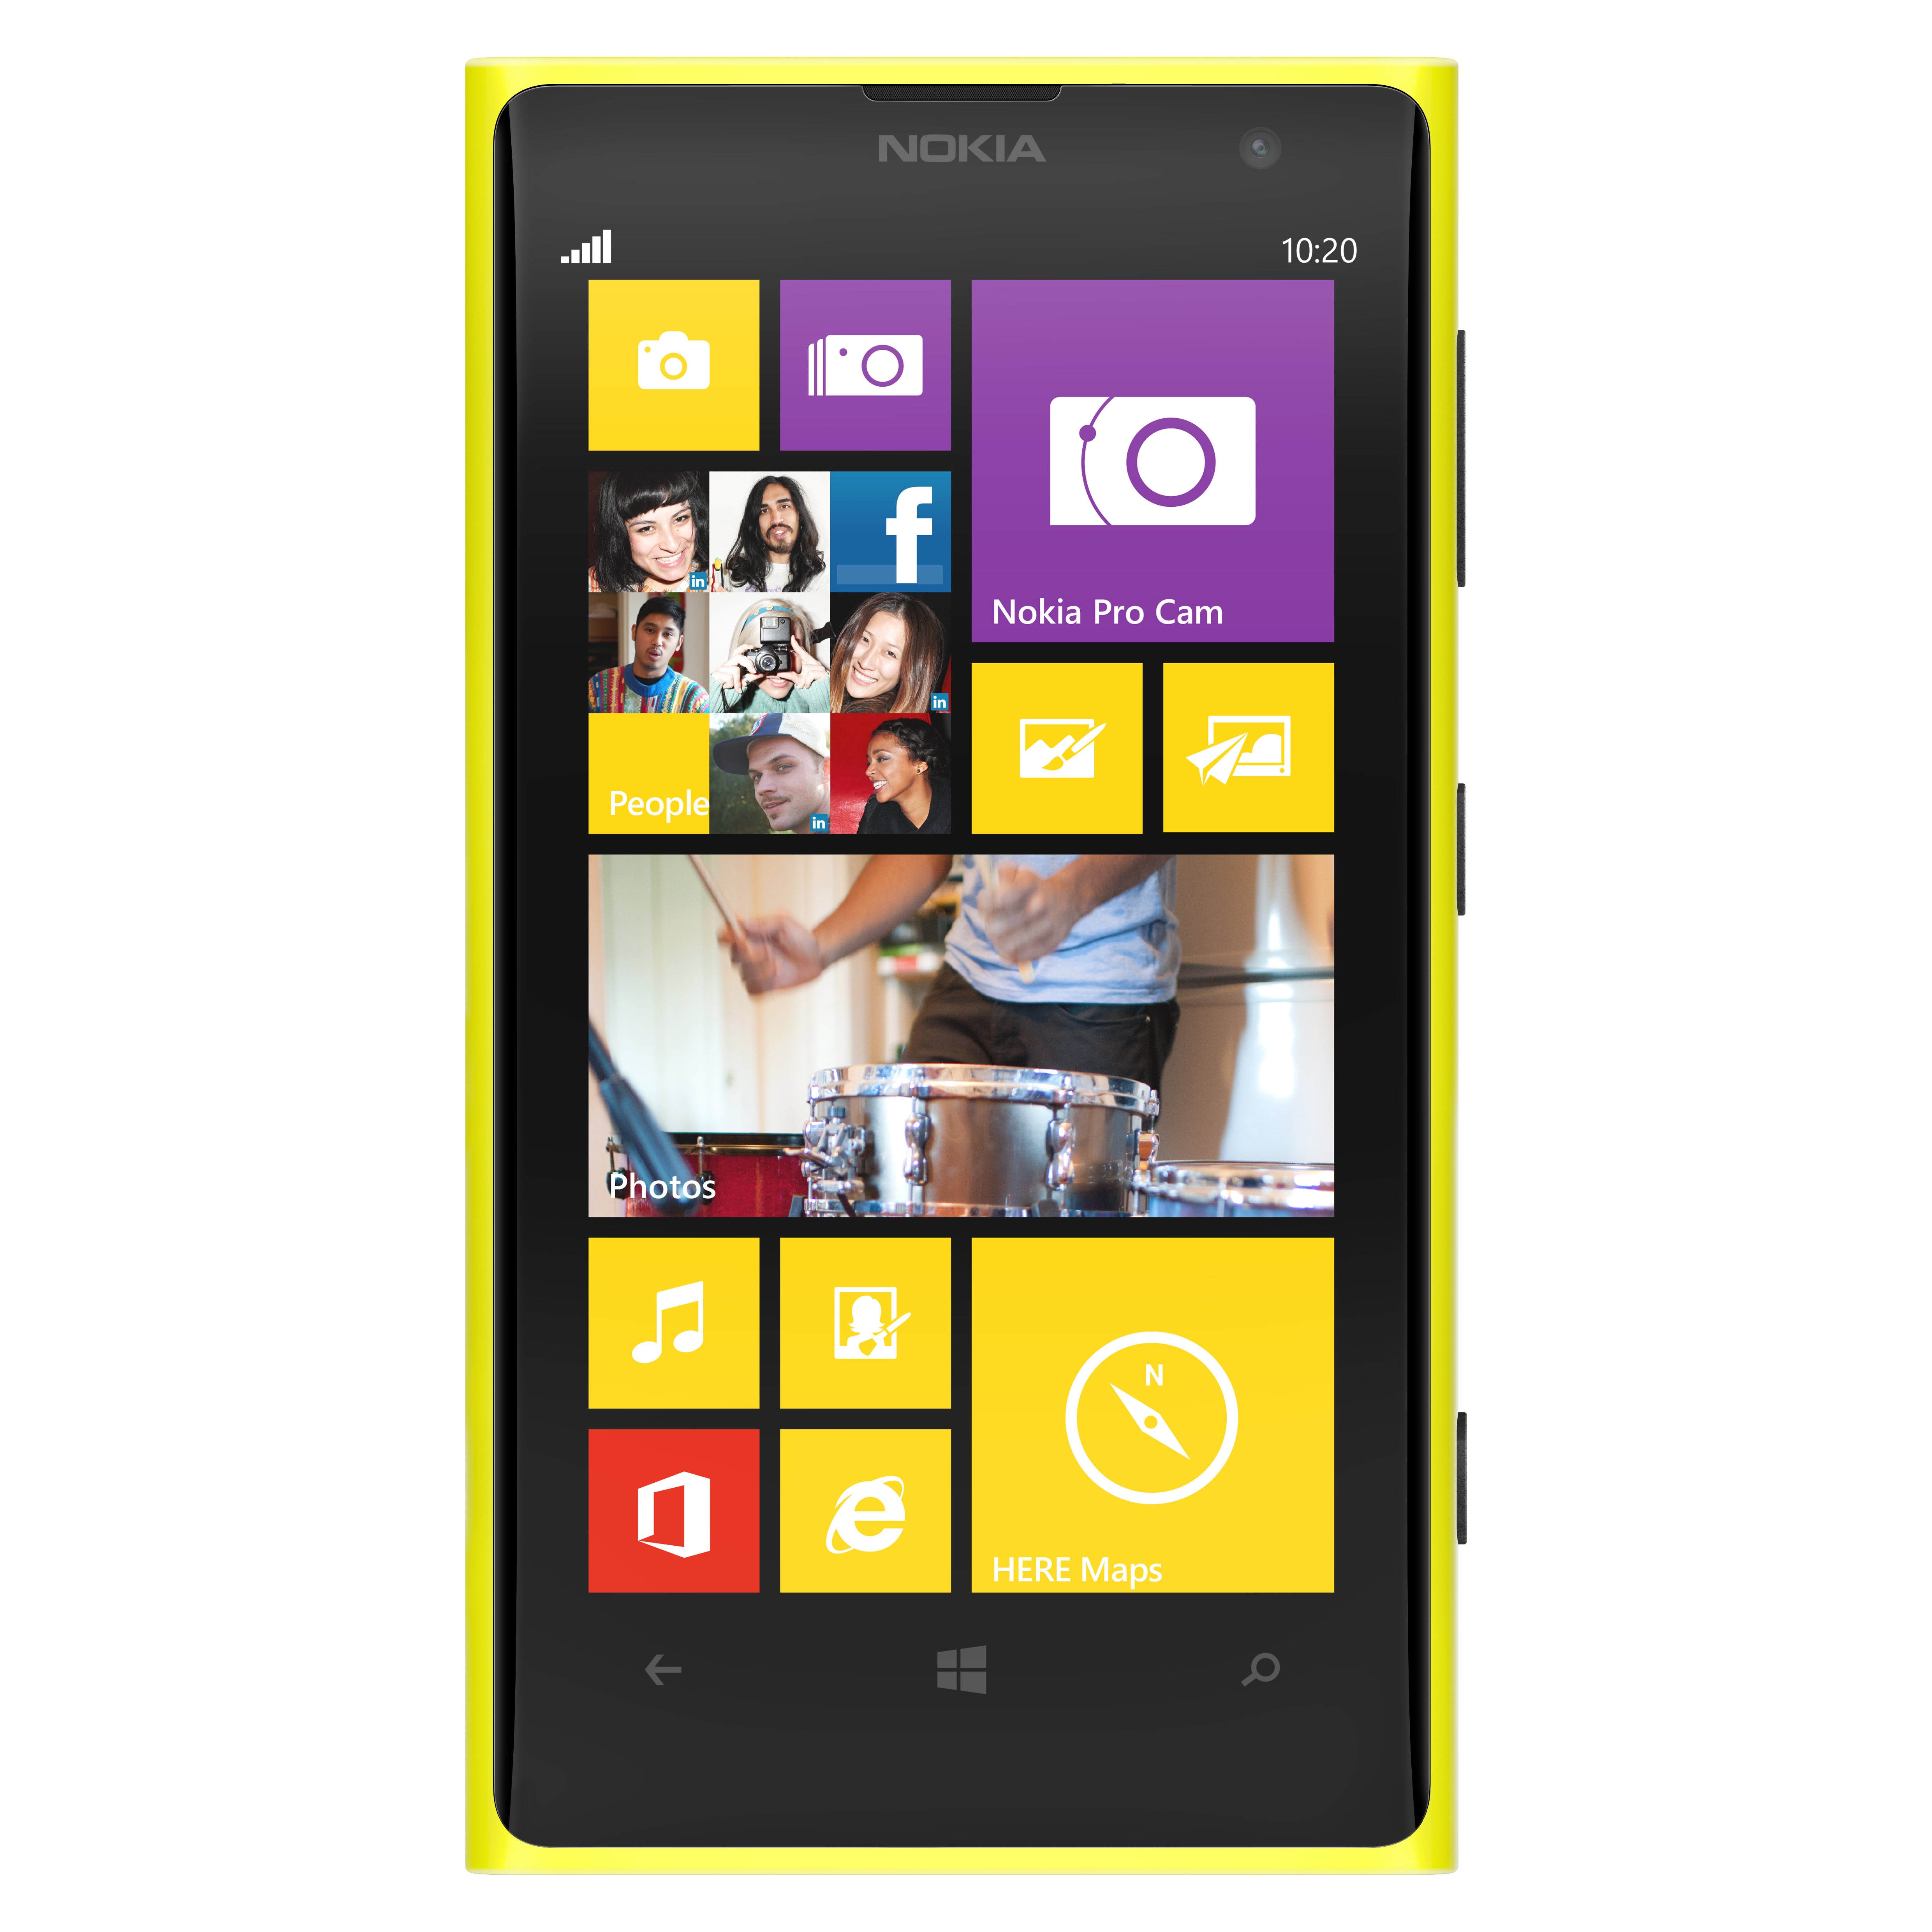 Nokia Lumia 1020 is unlike any smartphone in the Egyptian market